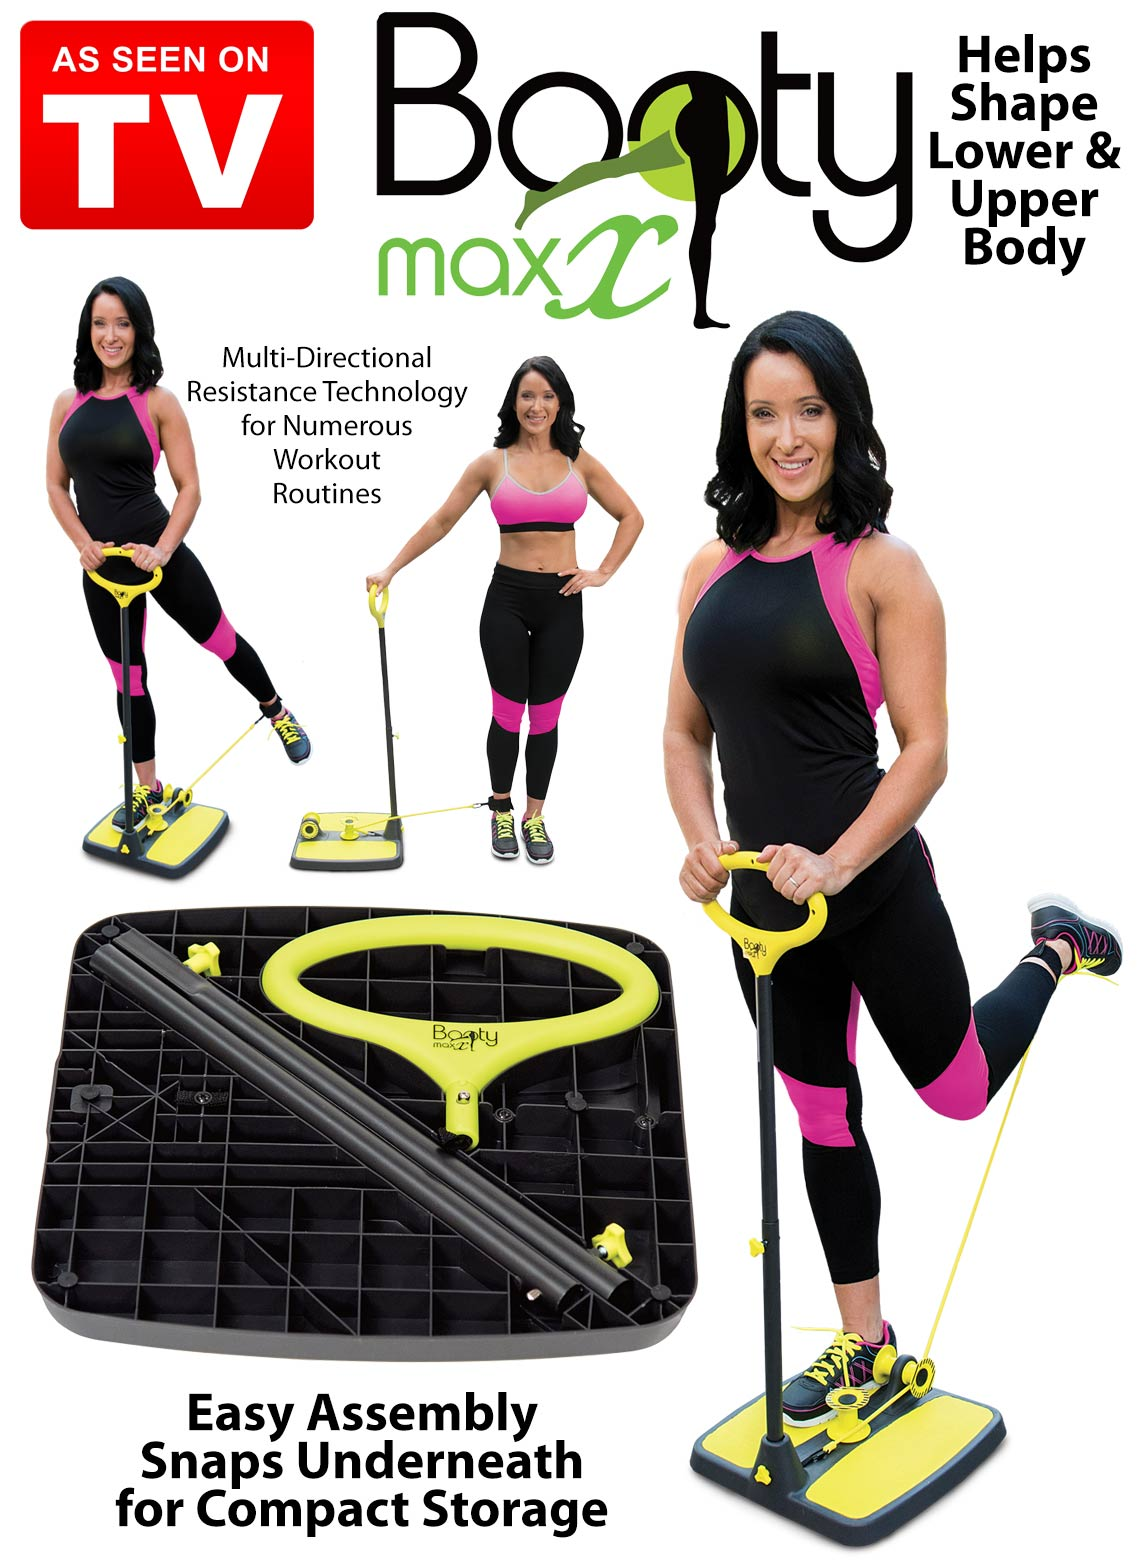 все цены на Booty Maxx Highly Targeted Muscle Toning Resistance Moves Multi-Directional Resistance Beach Booty-Made Shapes Lifts Your Booty онлайн